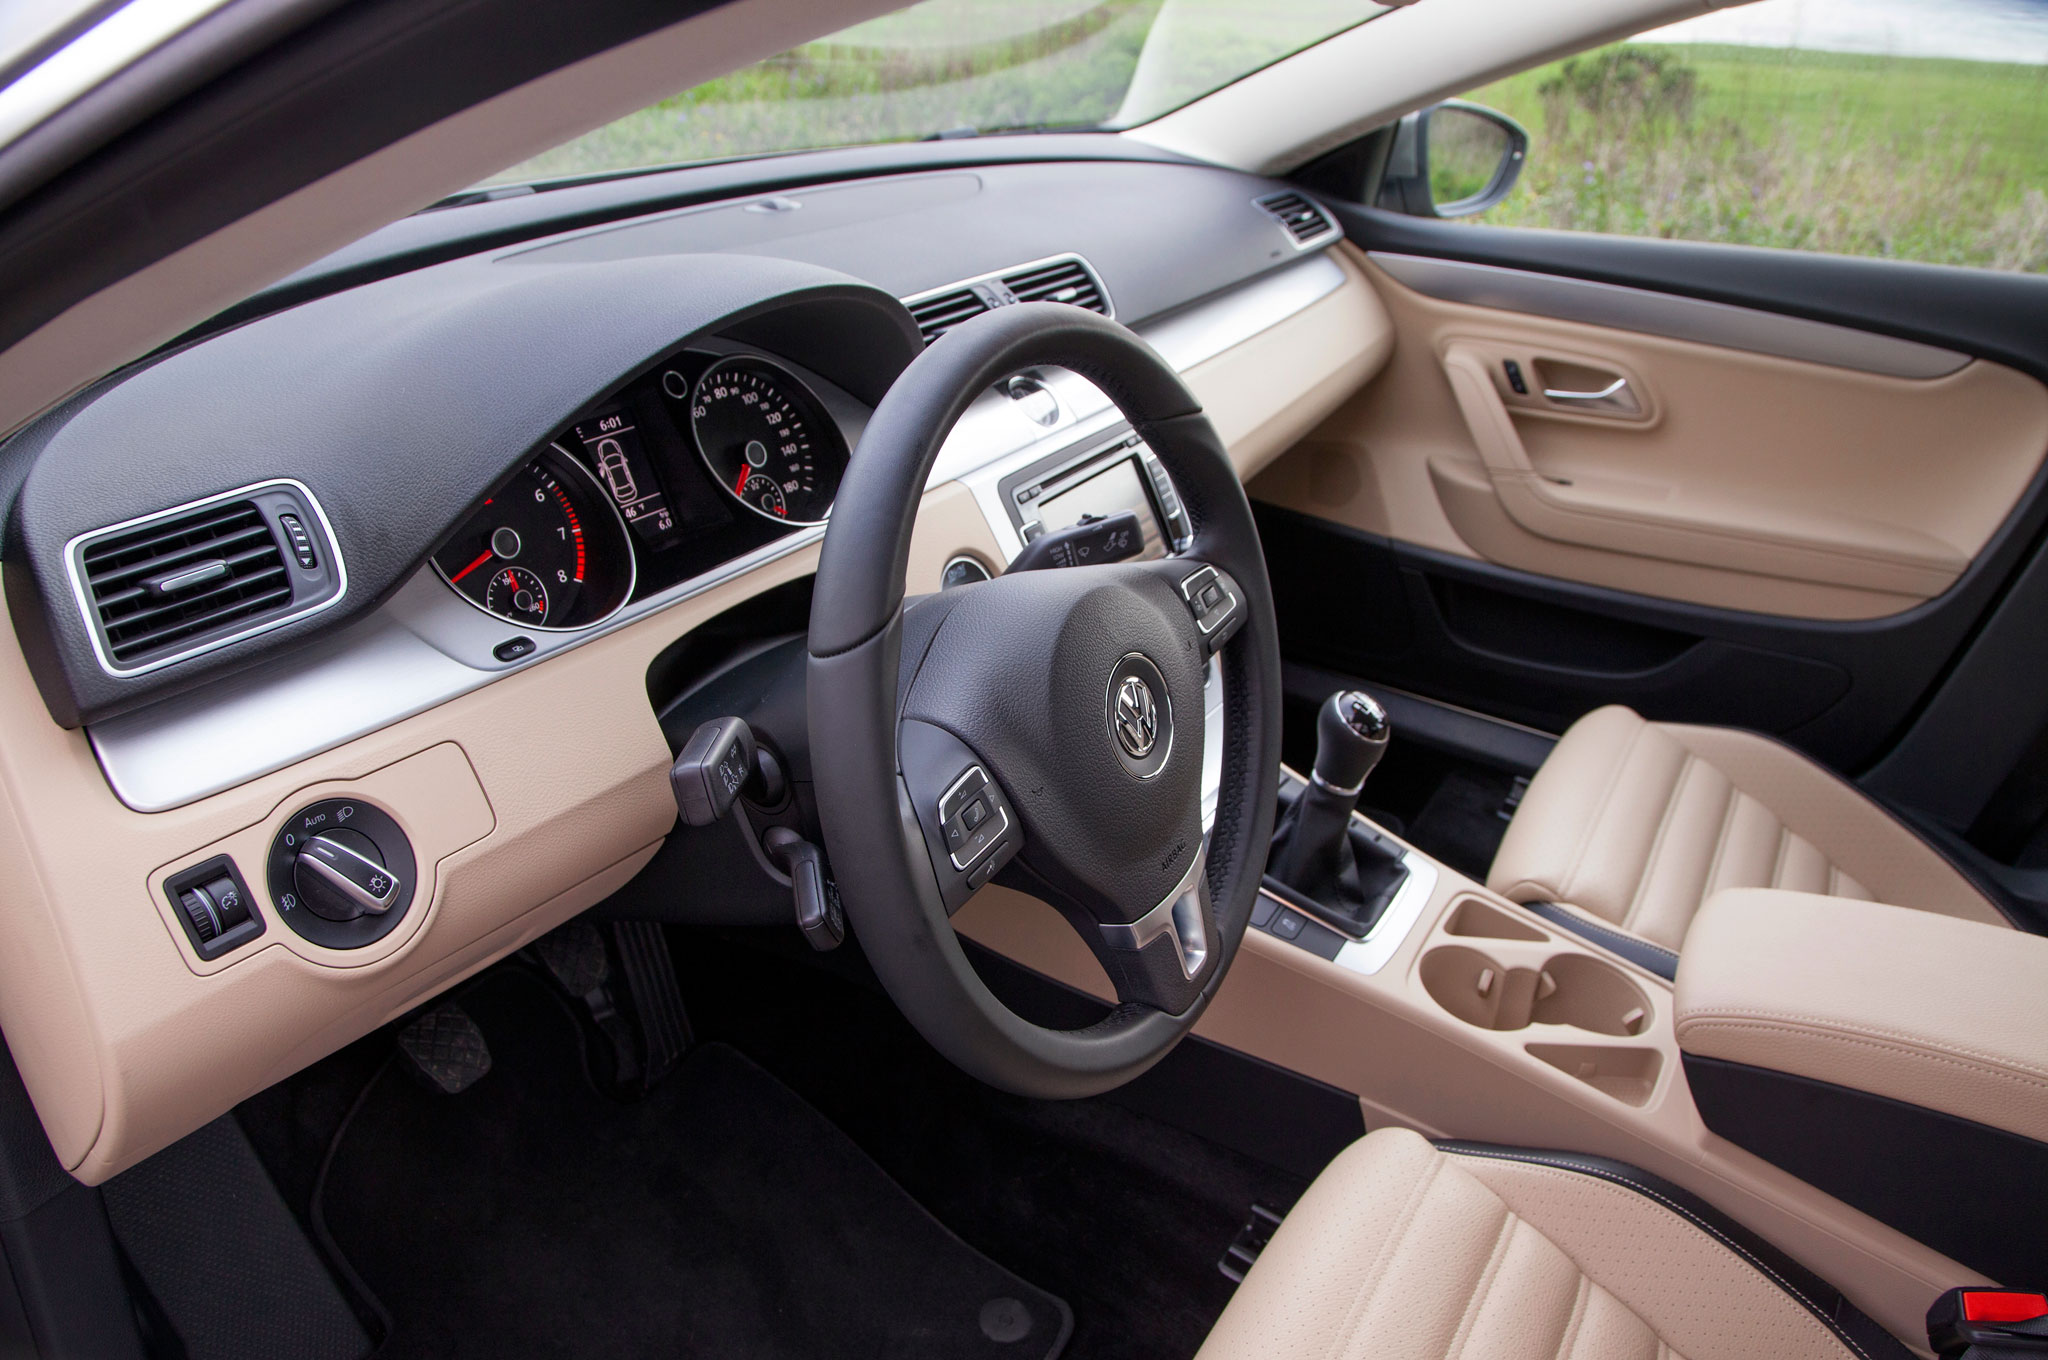 Review: 2013 volkswagen cc the truth about cars.